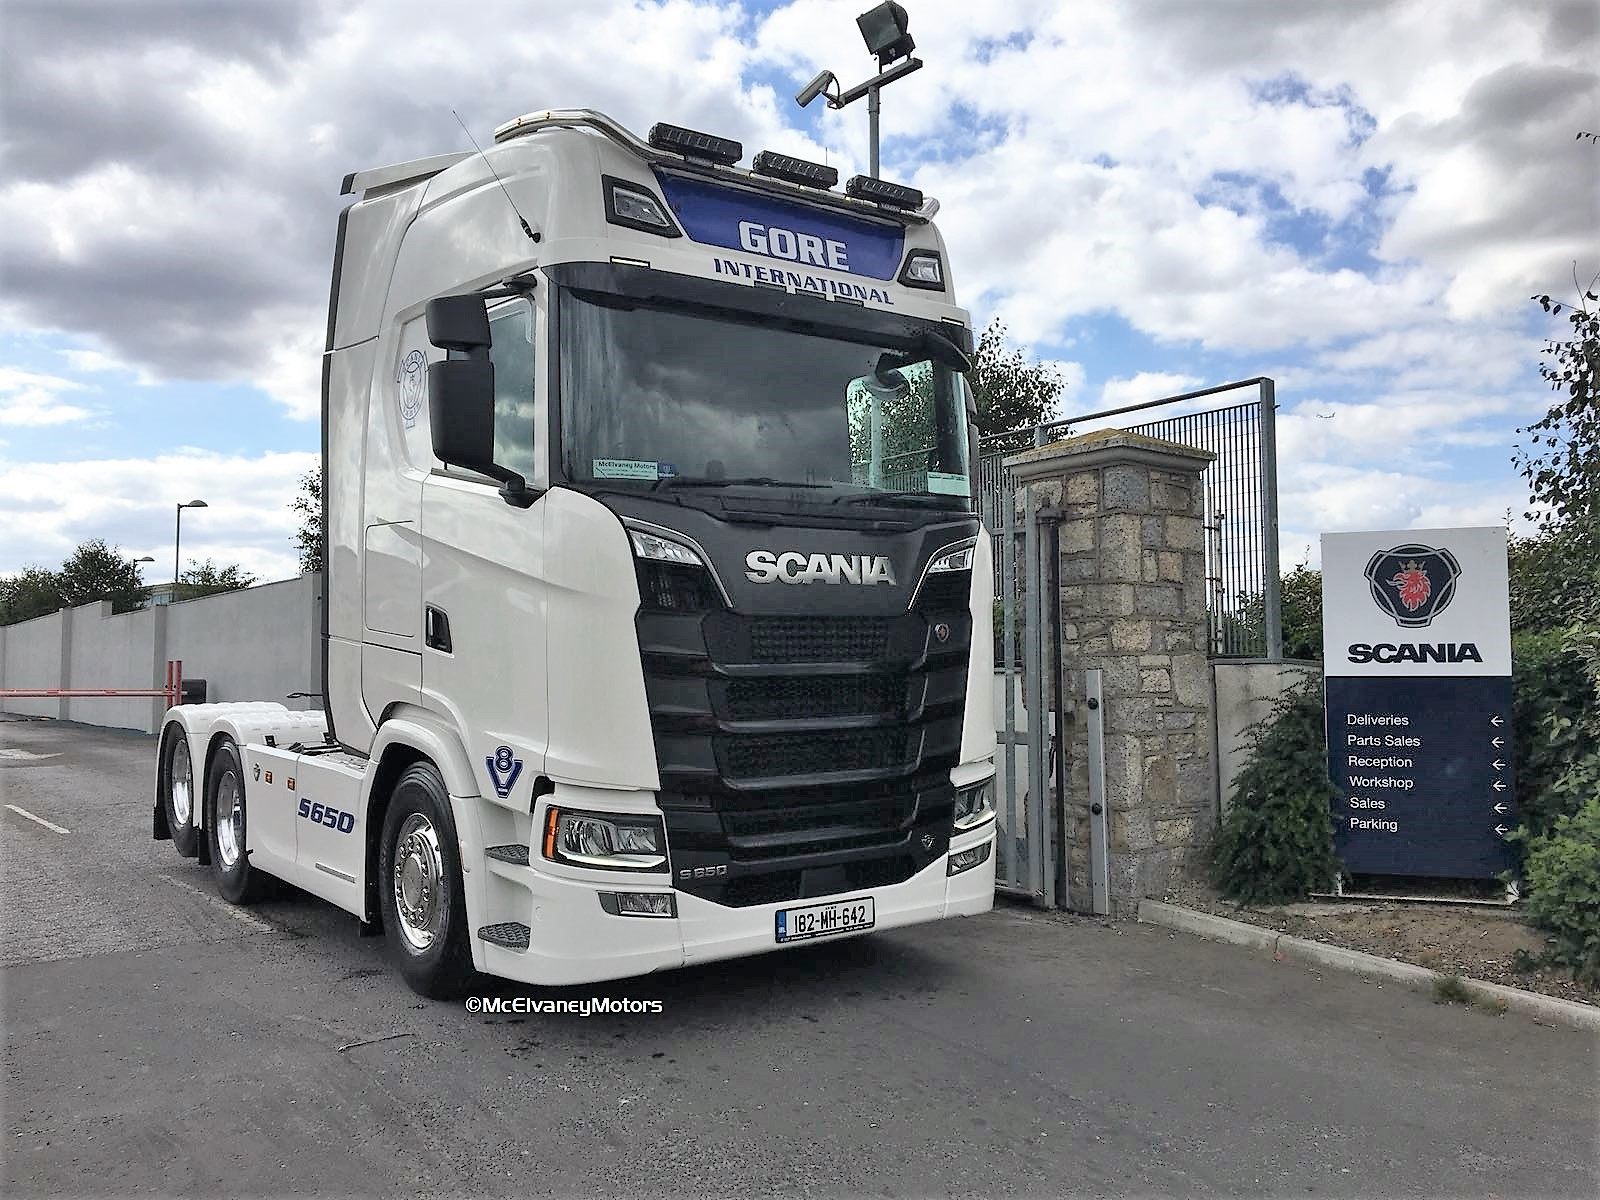 New Gen Scania S650 for Pat Gore!